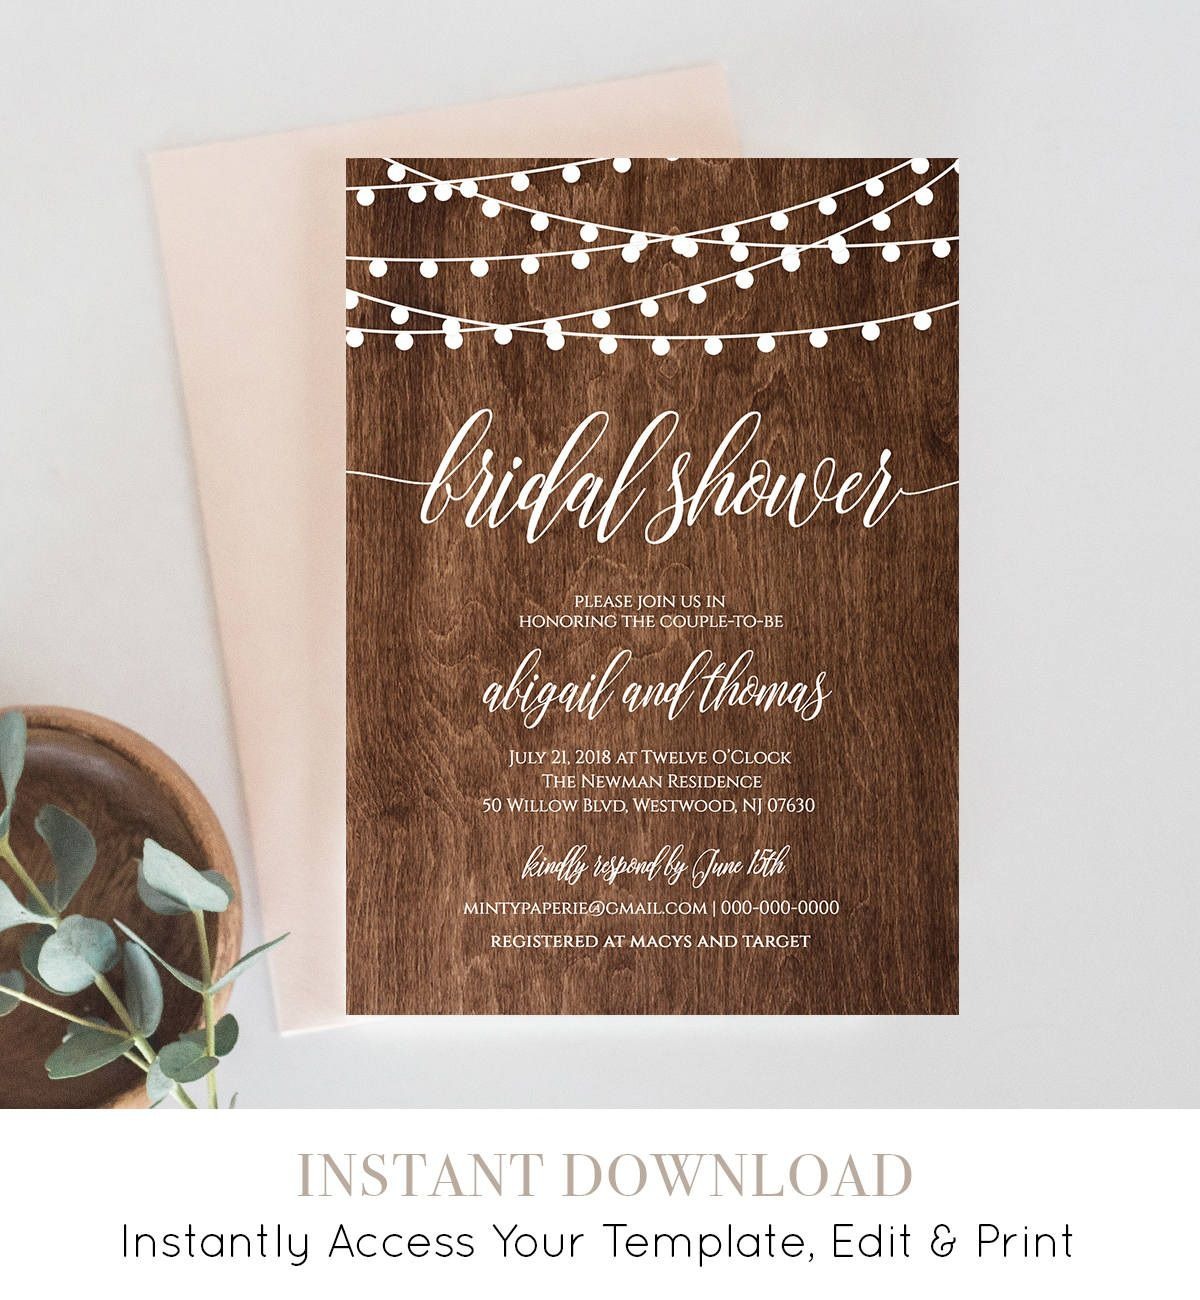 006 Surprising Free Couple Shower Invitation Template Download Sample Full